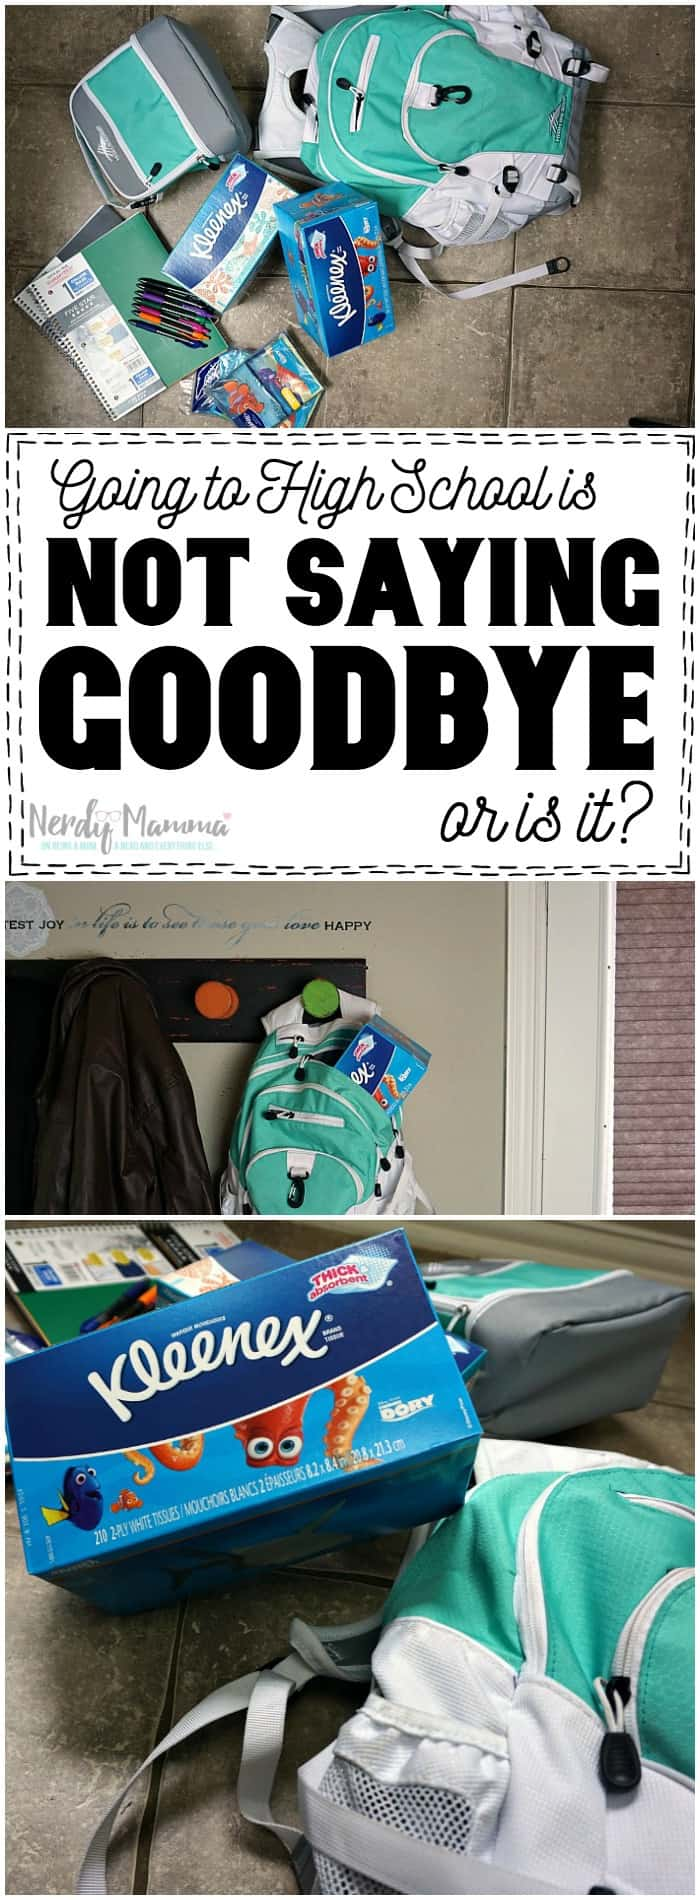 Oh, this mom is so right...Going to High School is NOT saying goodbye, but, in some ways, it is. Love this.